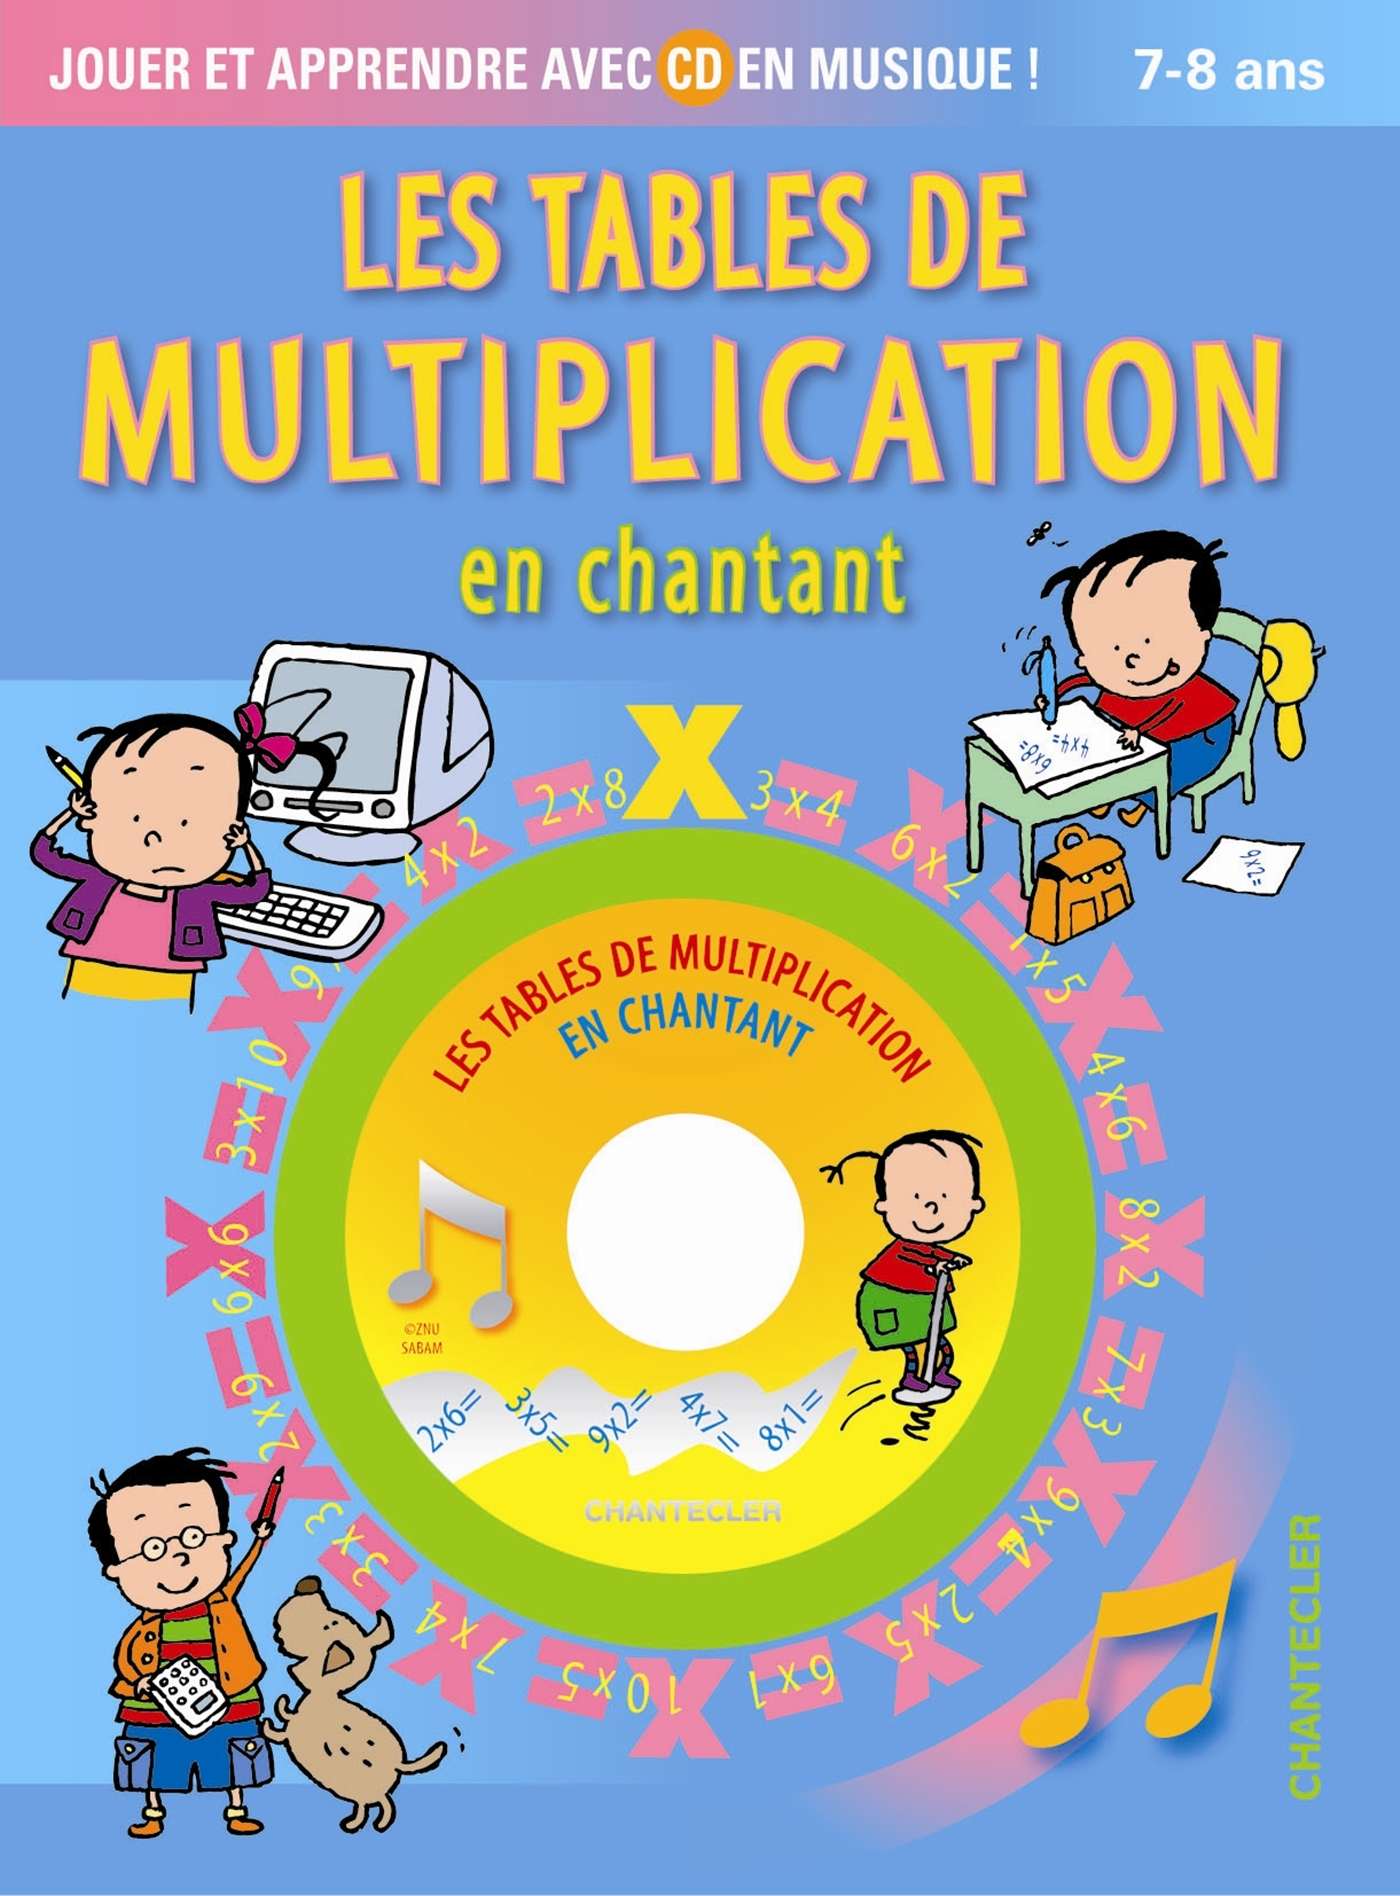 TABLES DE MULTIPLICATION EN CHANTANT (AVEC CD) (7-8 A.)